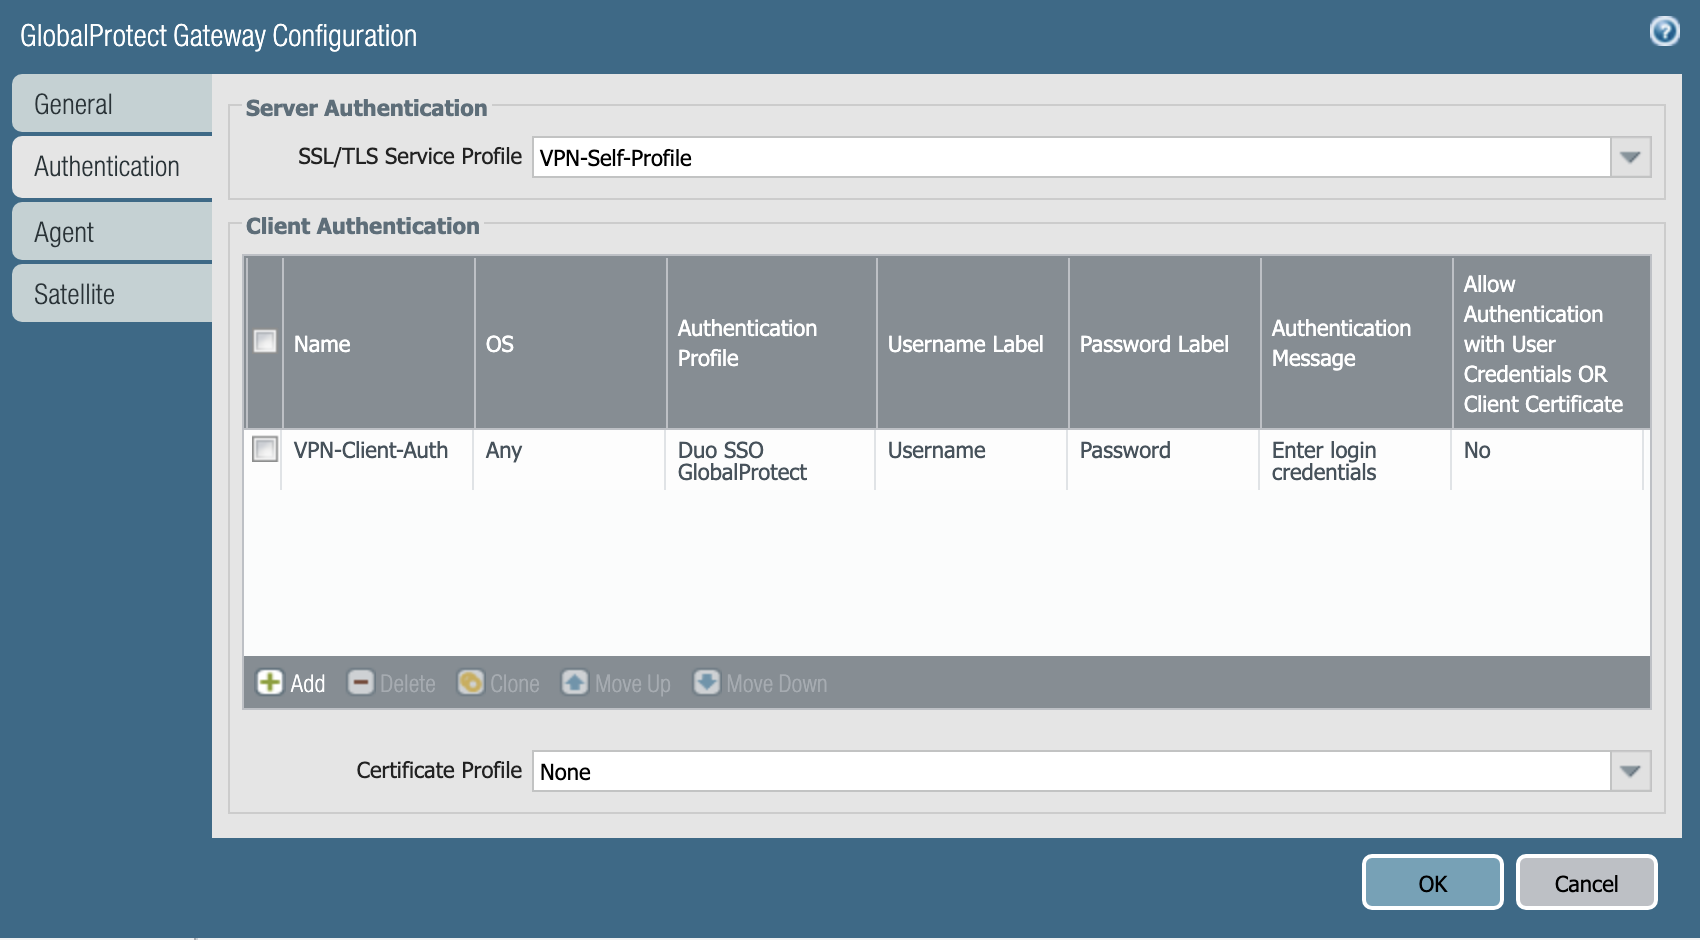 Palo Alto Networks Gateway Configuration